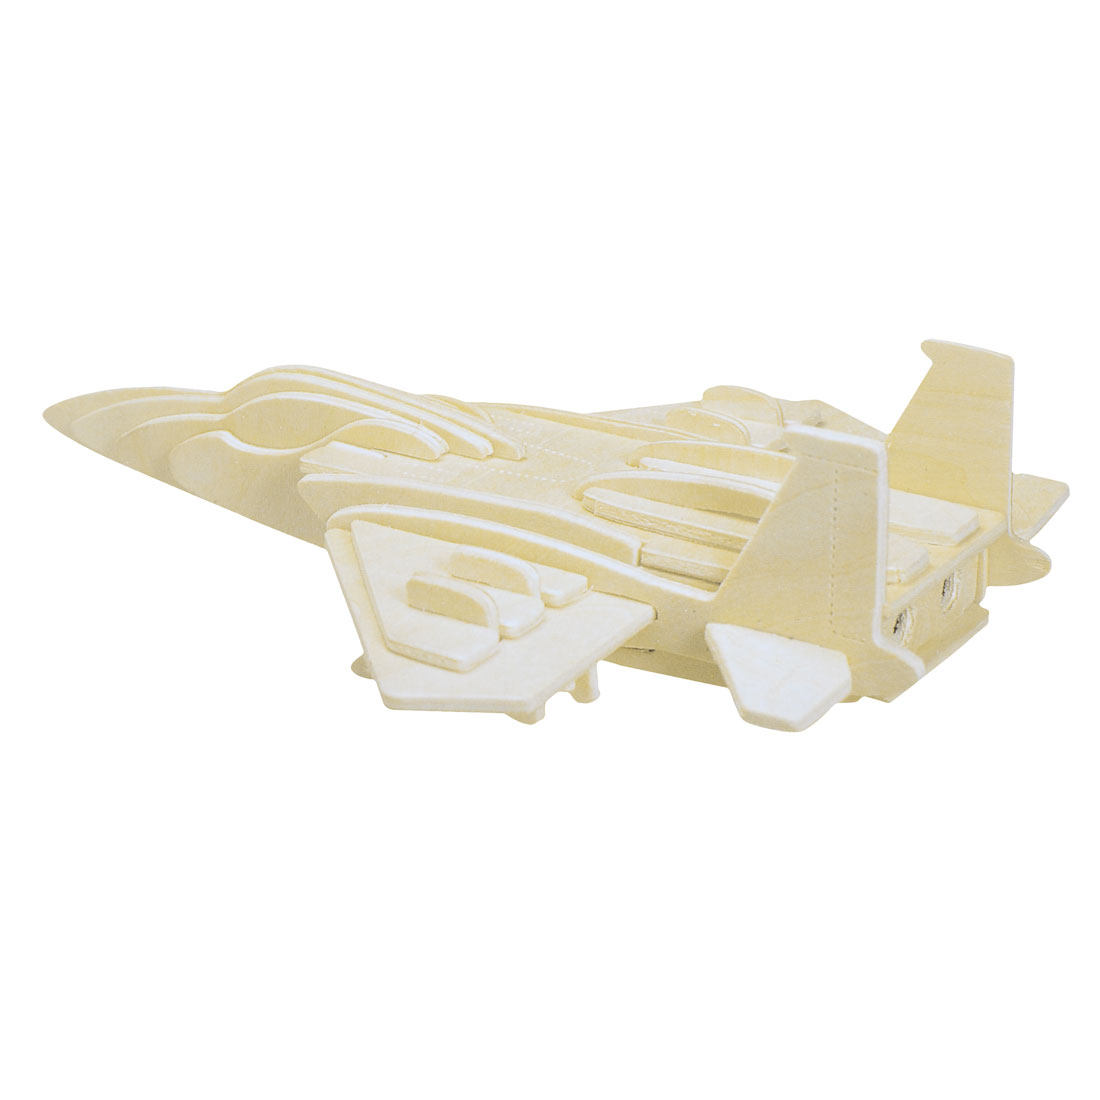 Children DIY 3D Puzzle F-15 Fighter Plane Model Wooden Toy Woodcraft Construction Kit